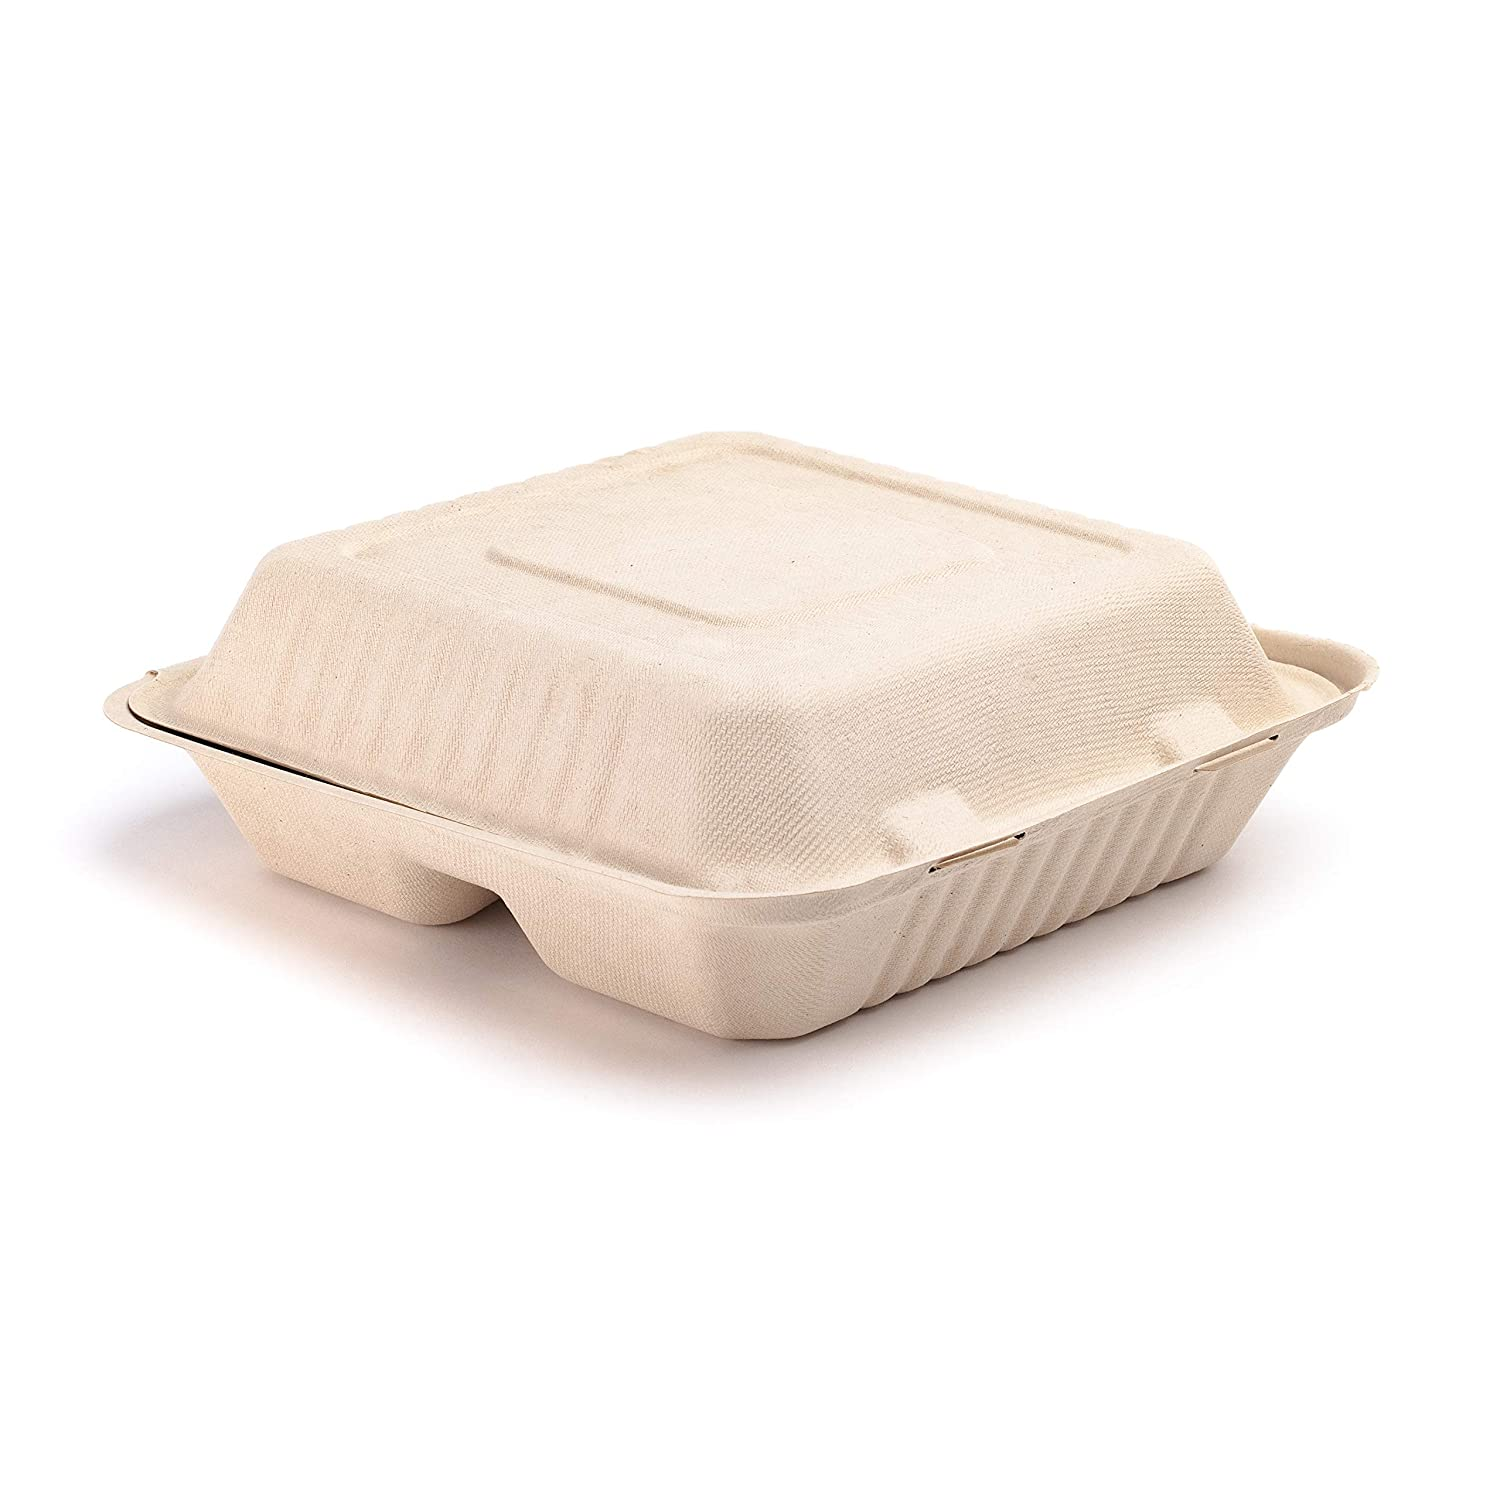 """Footprint's eco-Friendly 200 Pack Fiber 9"""" 3-Cavity Take Out Food Containers with Clamshell Hinged Lid (Natural Look) - Biodegradable, Plant-Based Fiber"""